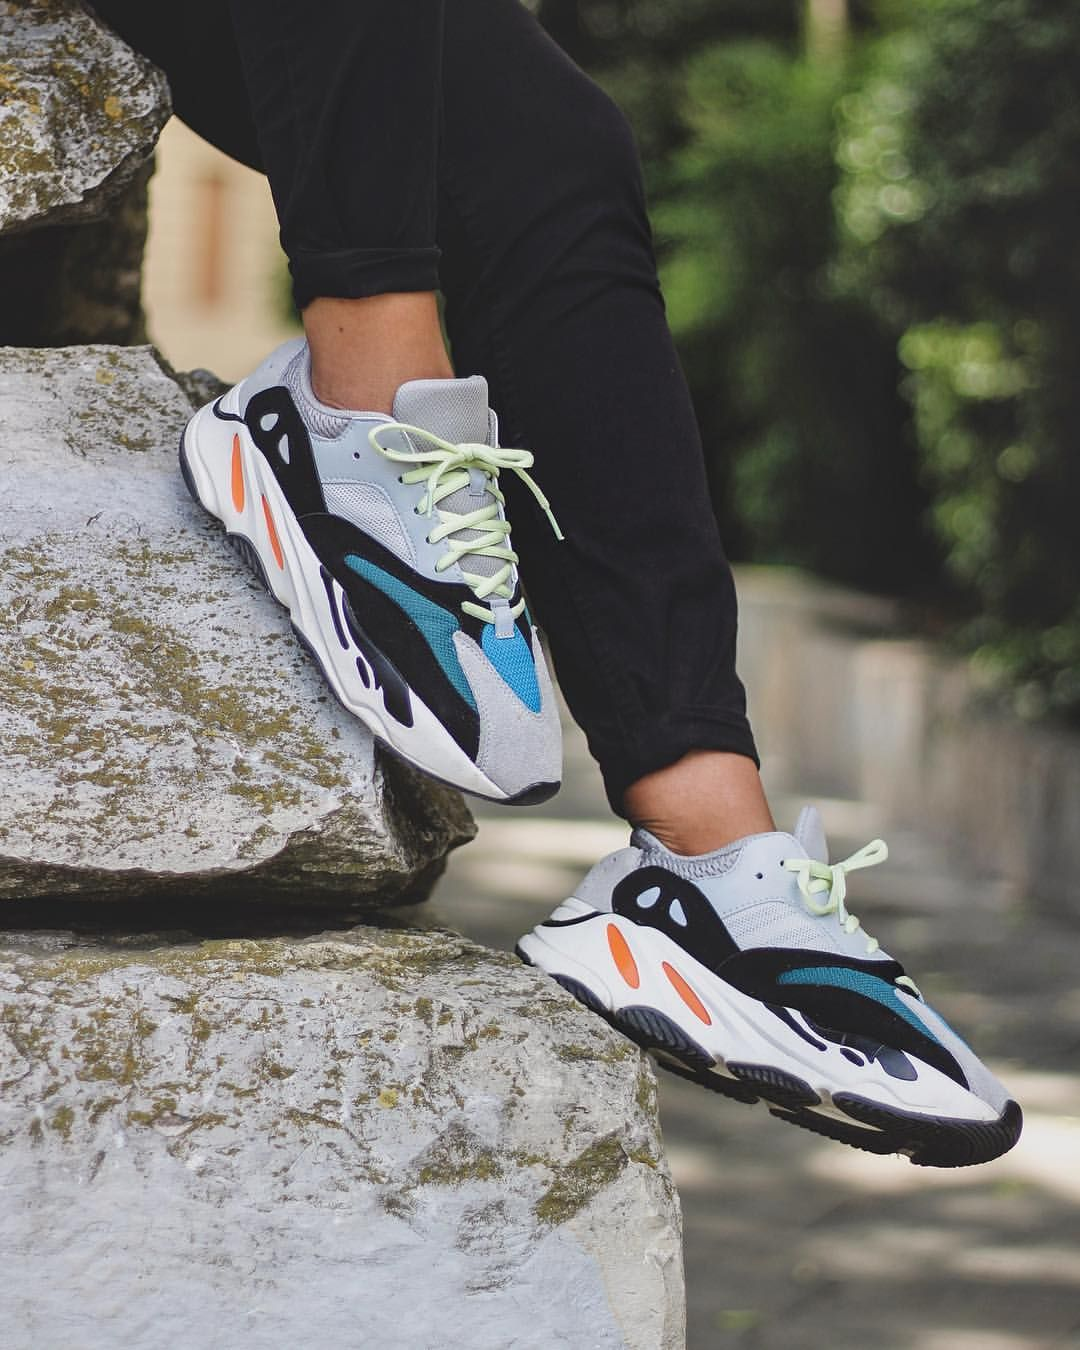 save off 4a864 b6cbd adidas Yeezy 700 Wave runner